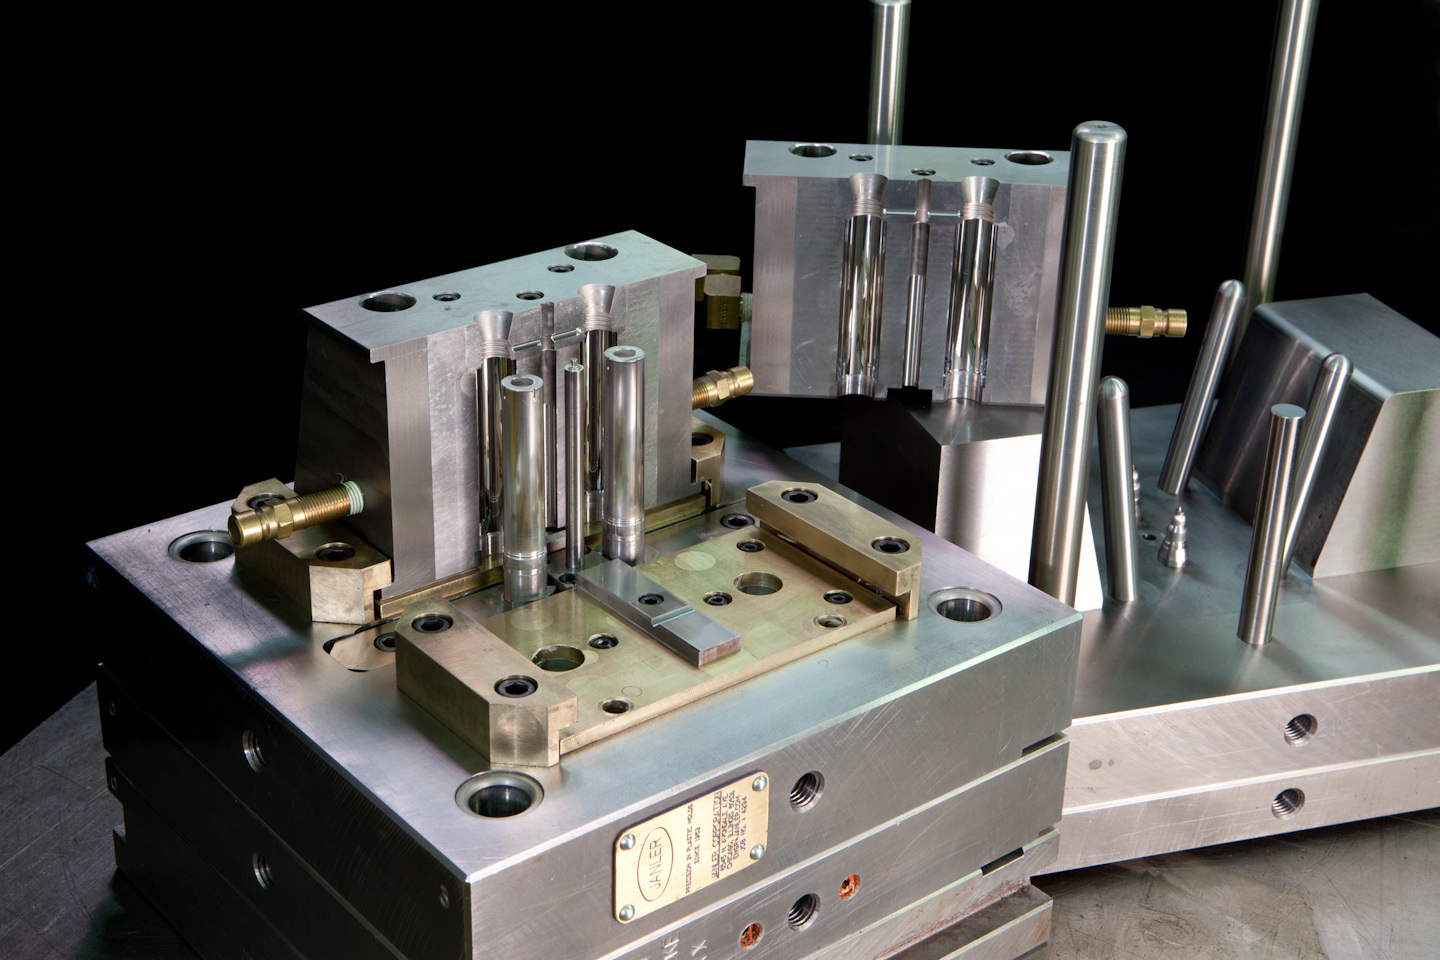 Prototype and production plastic injection molds